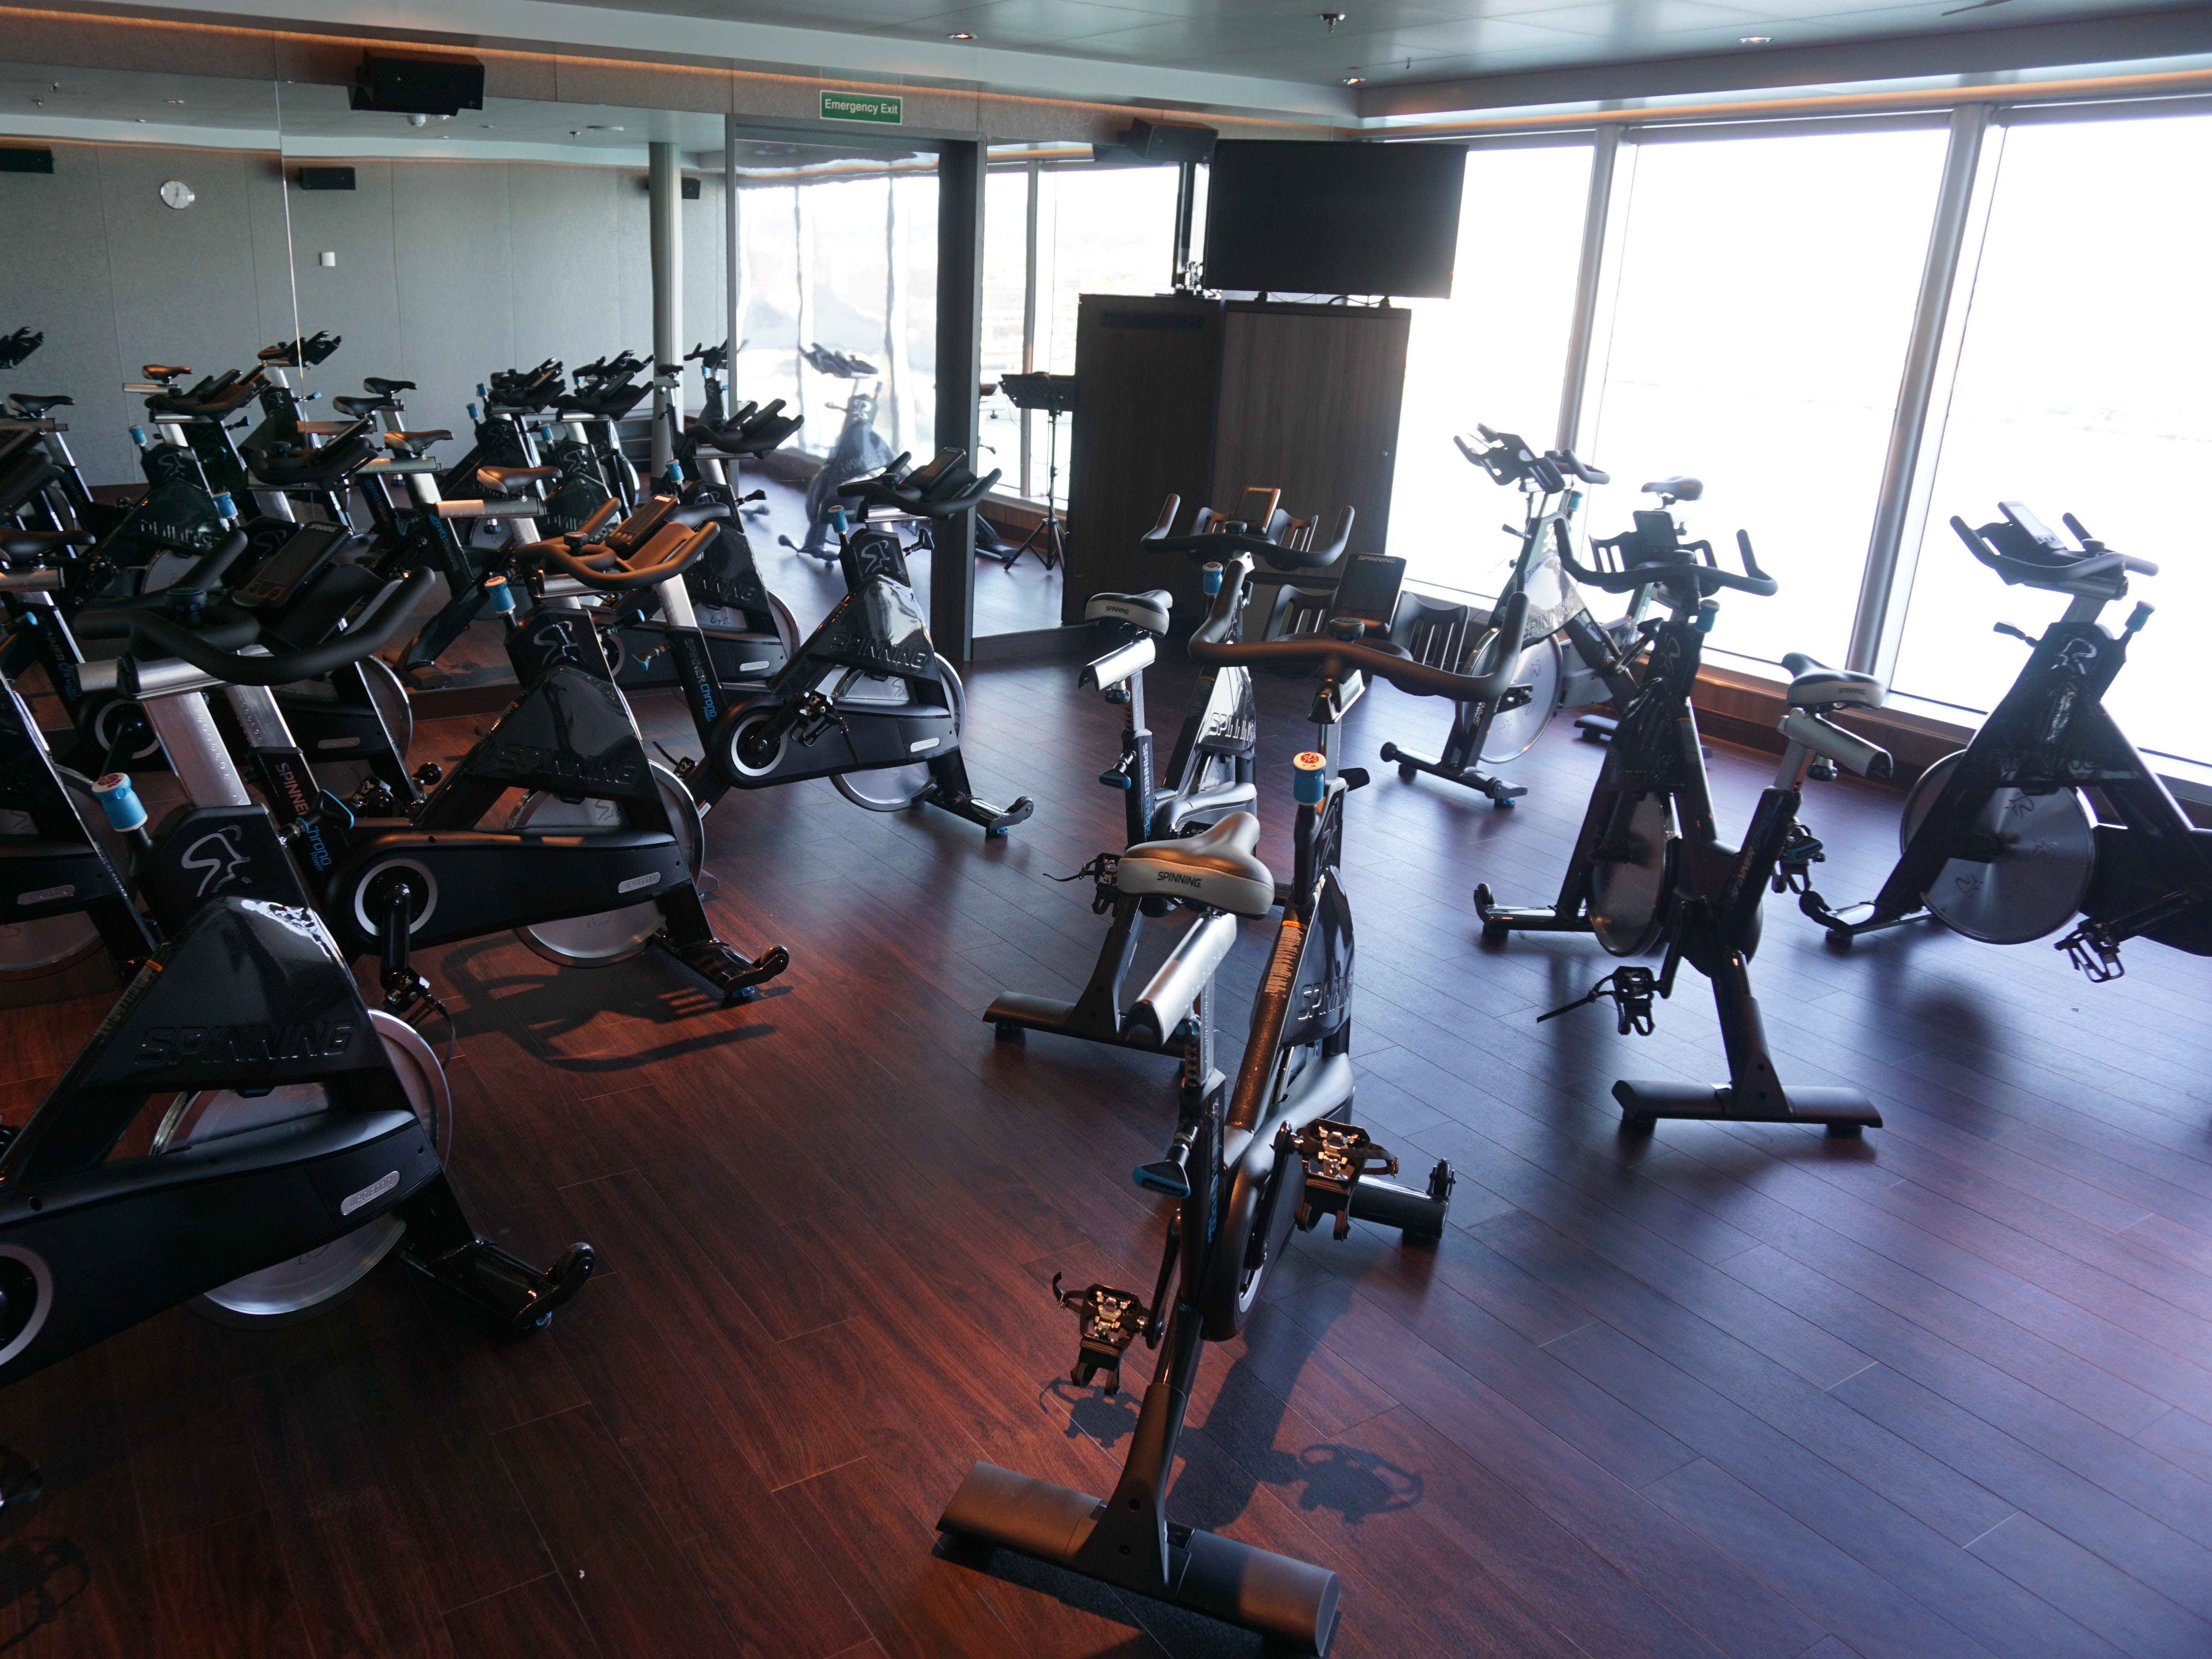 In the forward portion of the Greenhouse Spa, there is a large gym and exercise area as well as a dedicated spinning room.